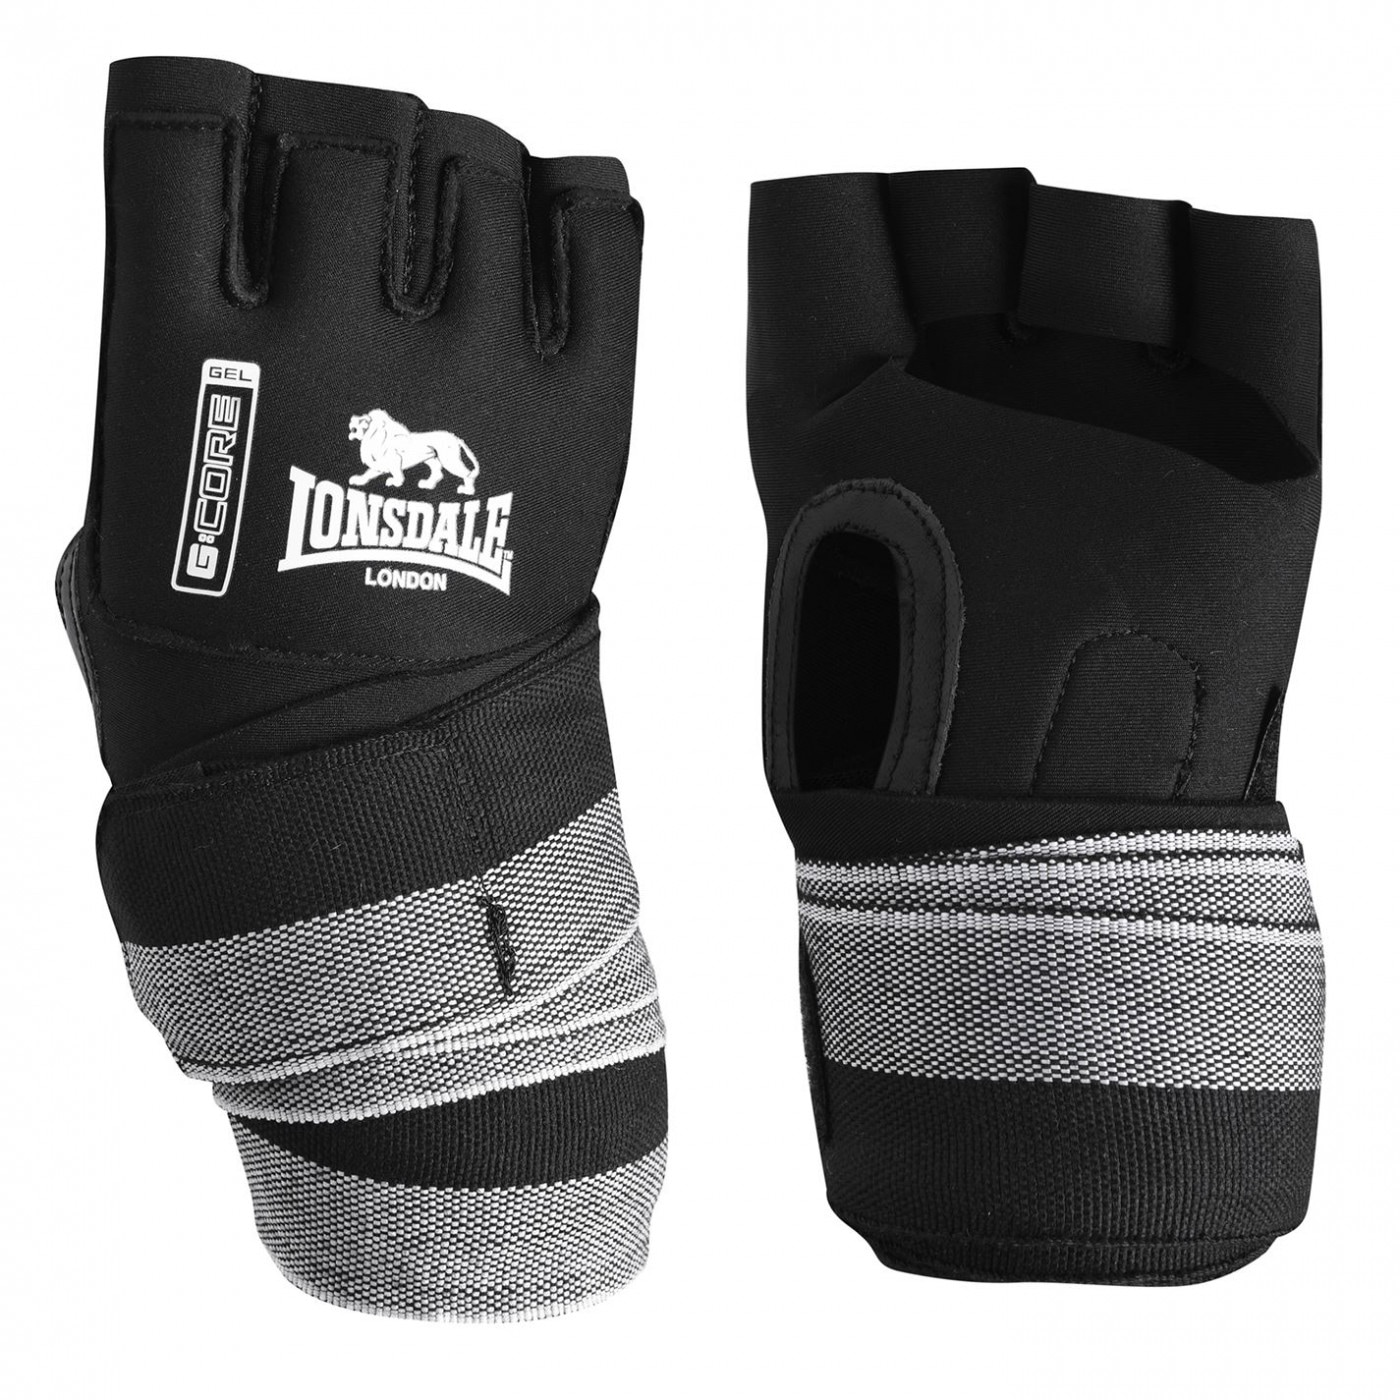 Lonsdale G Core Glove Hand Wraps